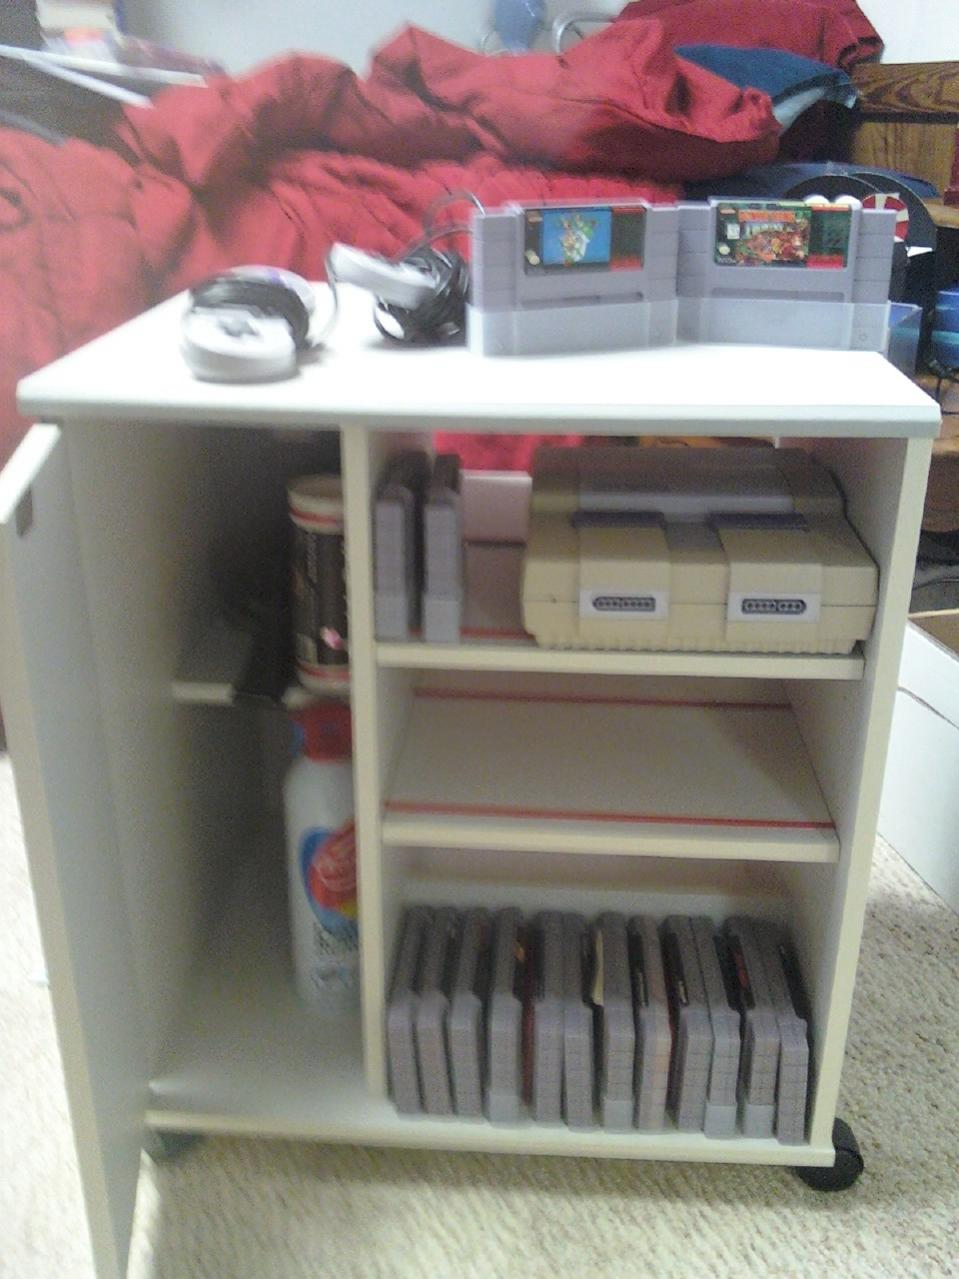 Nintendo NES Rare Game & System Cabinet spotted on Ebay